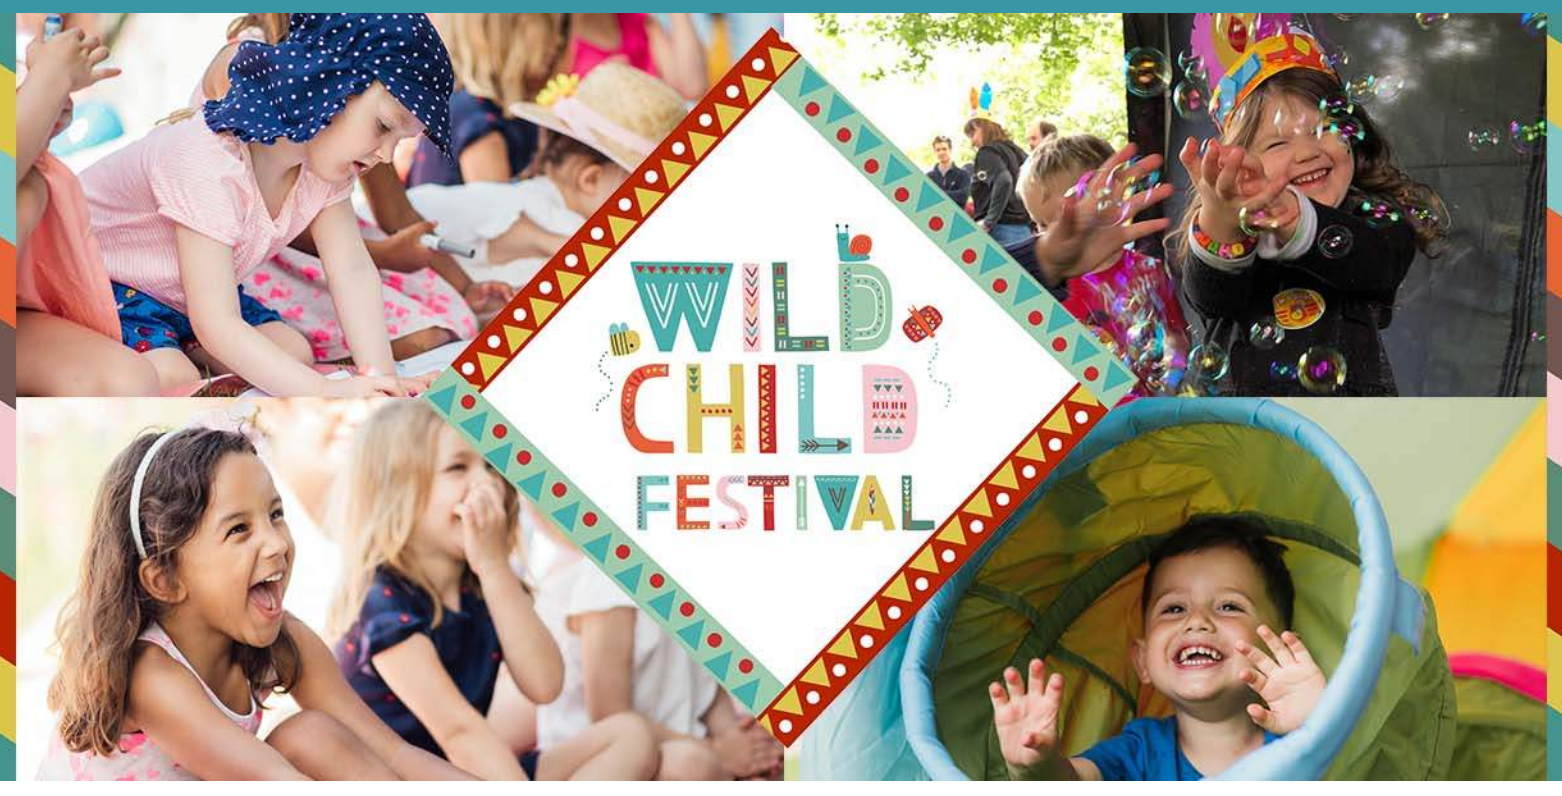 TAP_GG_WildChildFestival_Banner.png